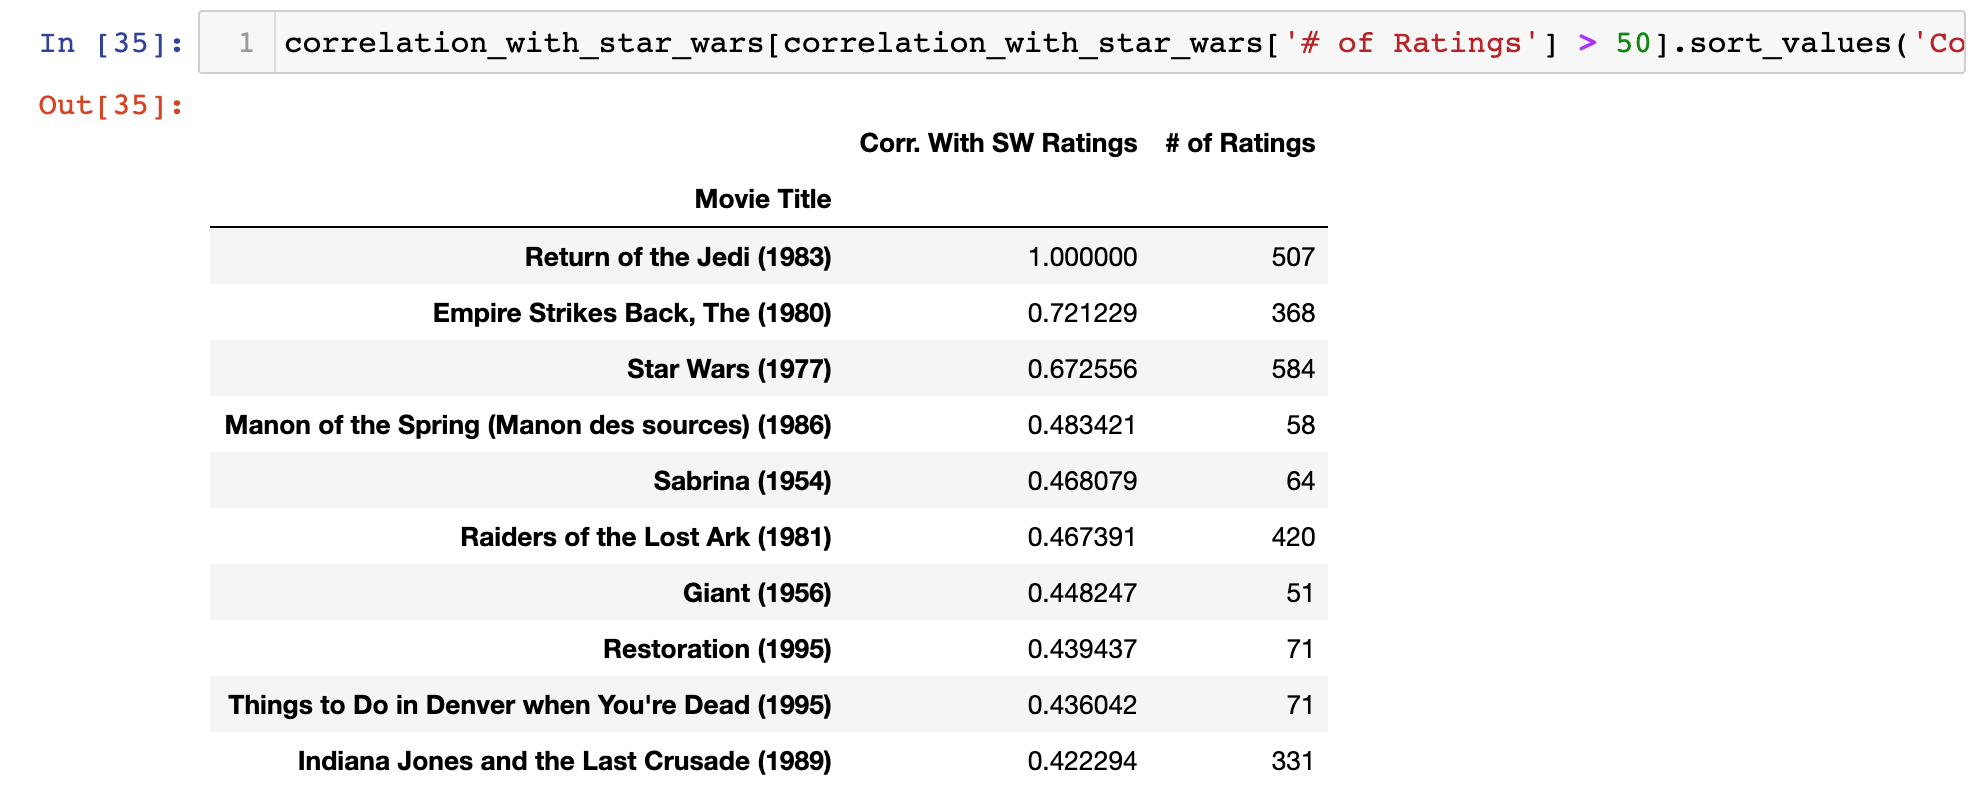 The 10 movies most similar to Star Wars